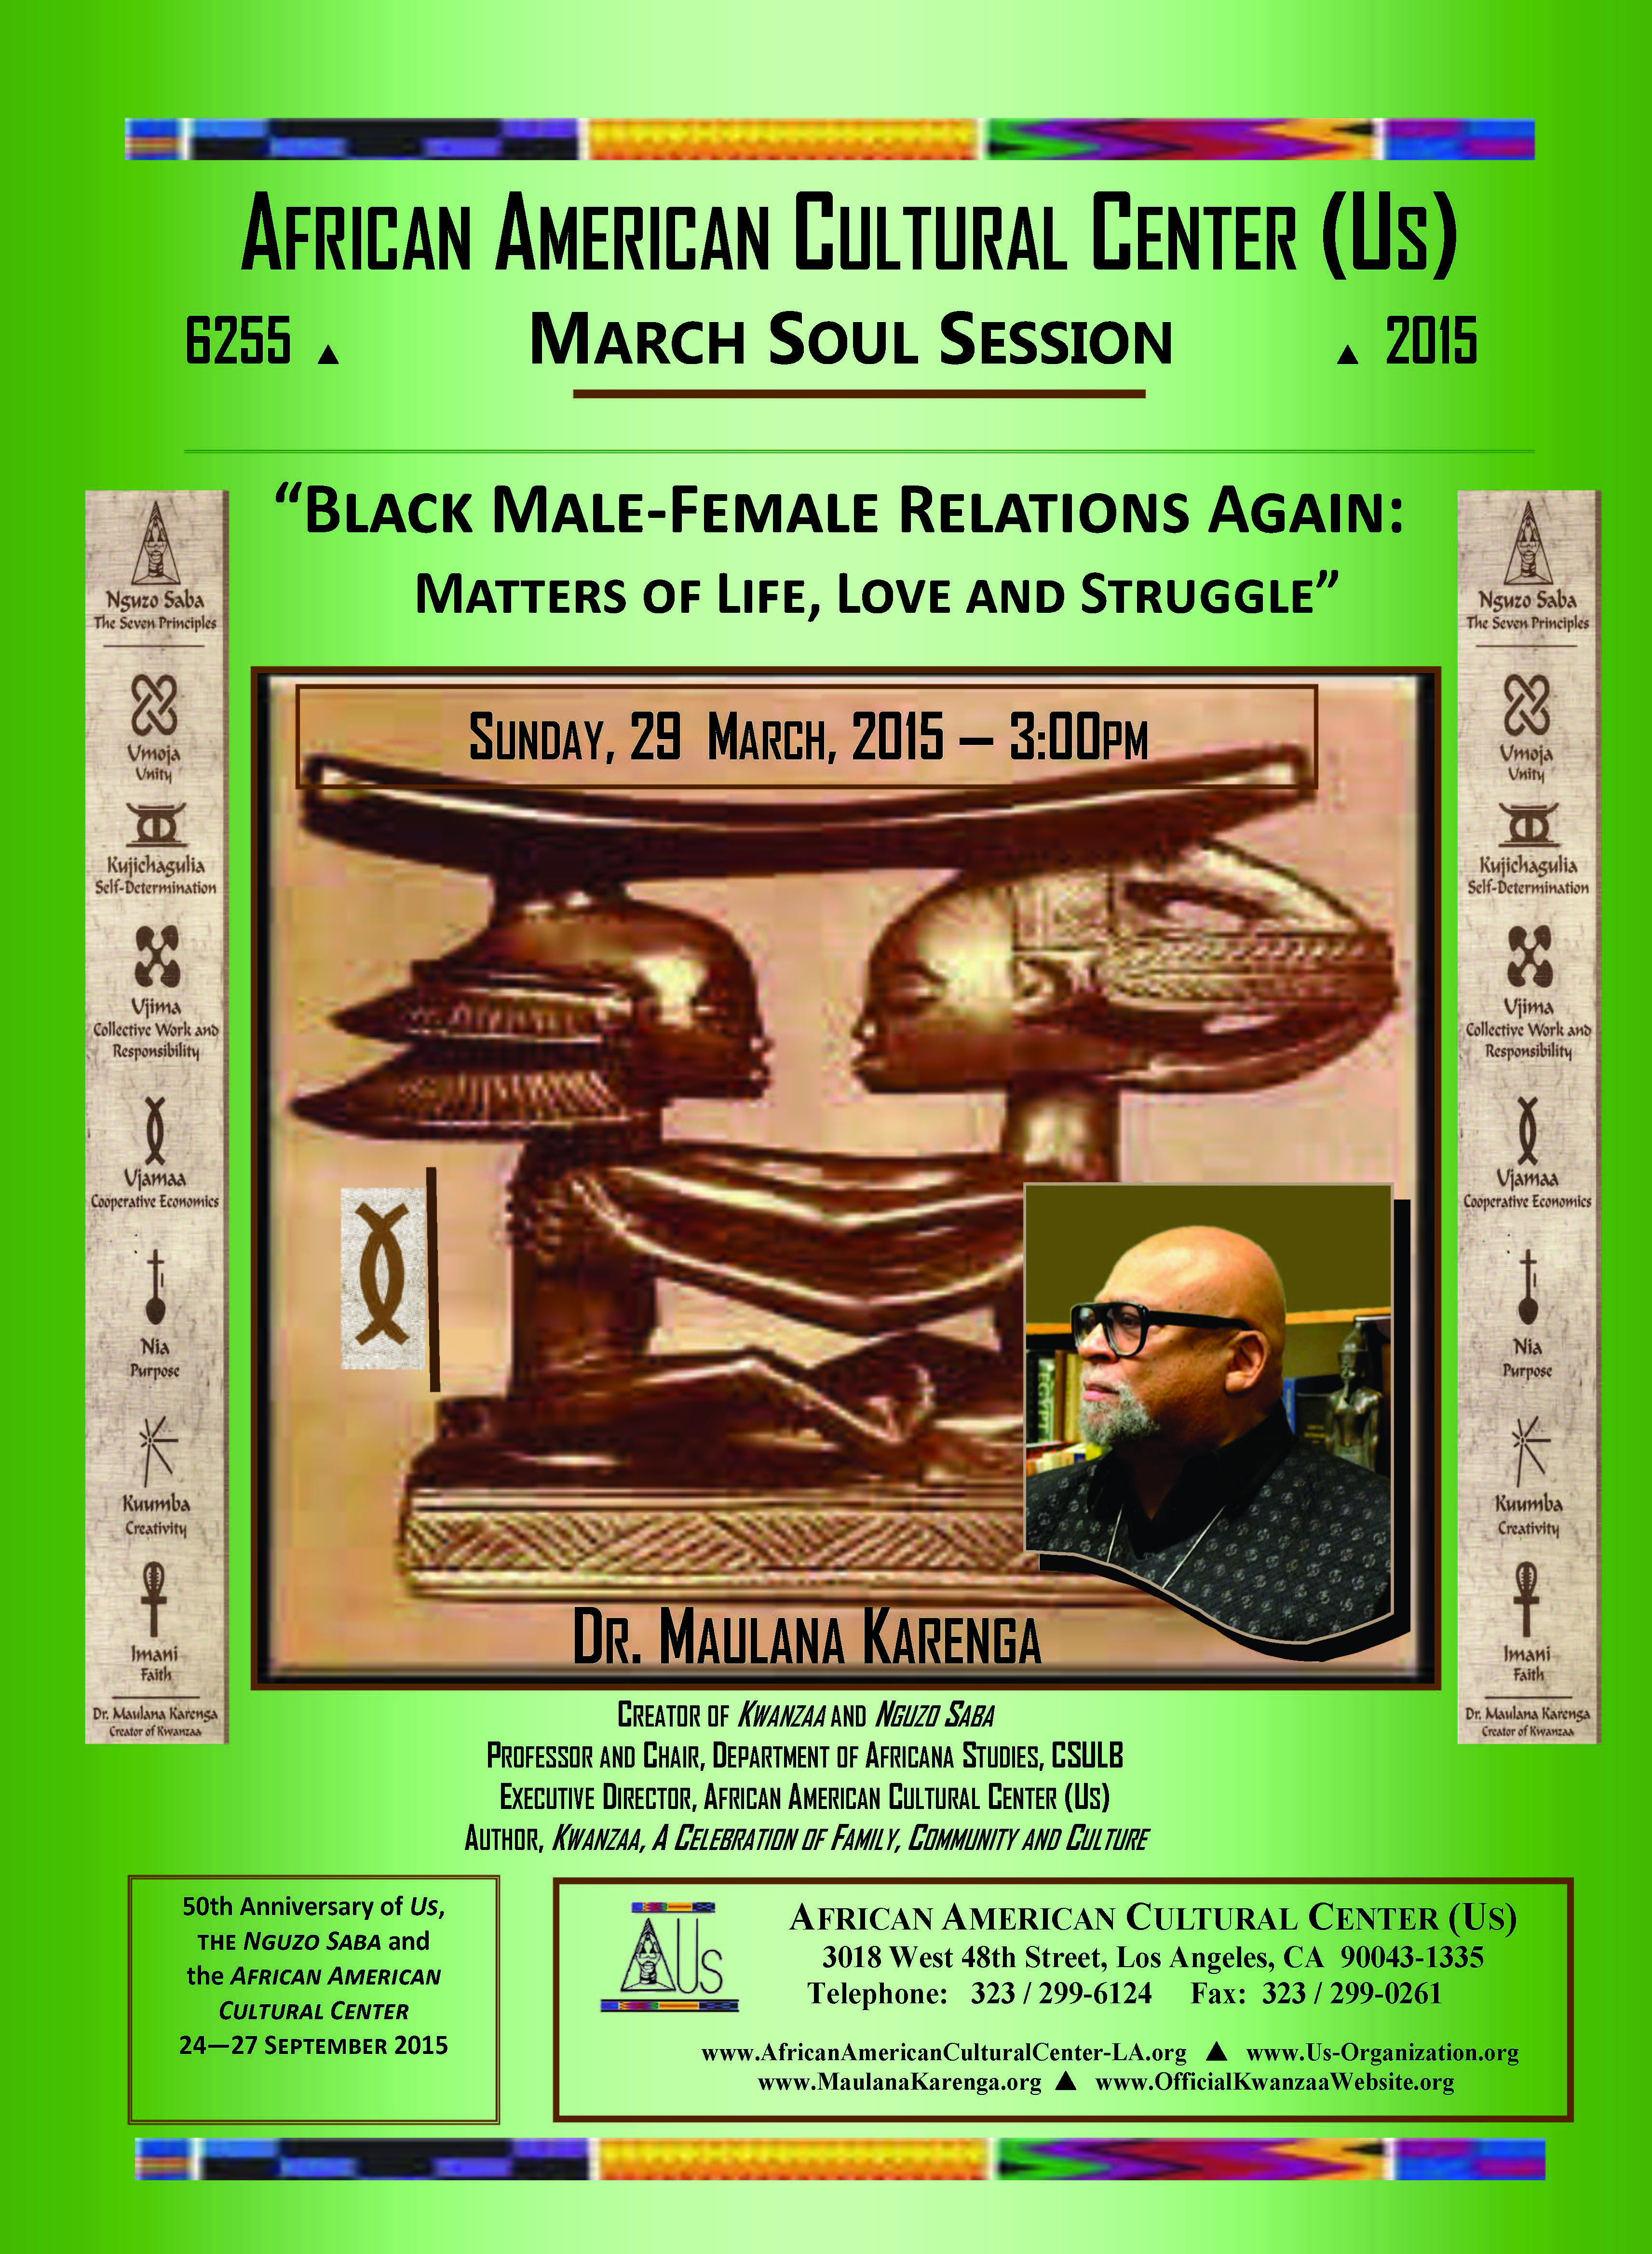 03-29-15 Dr. Maulana Karenga--Black Love Again